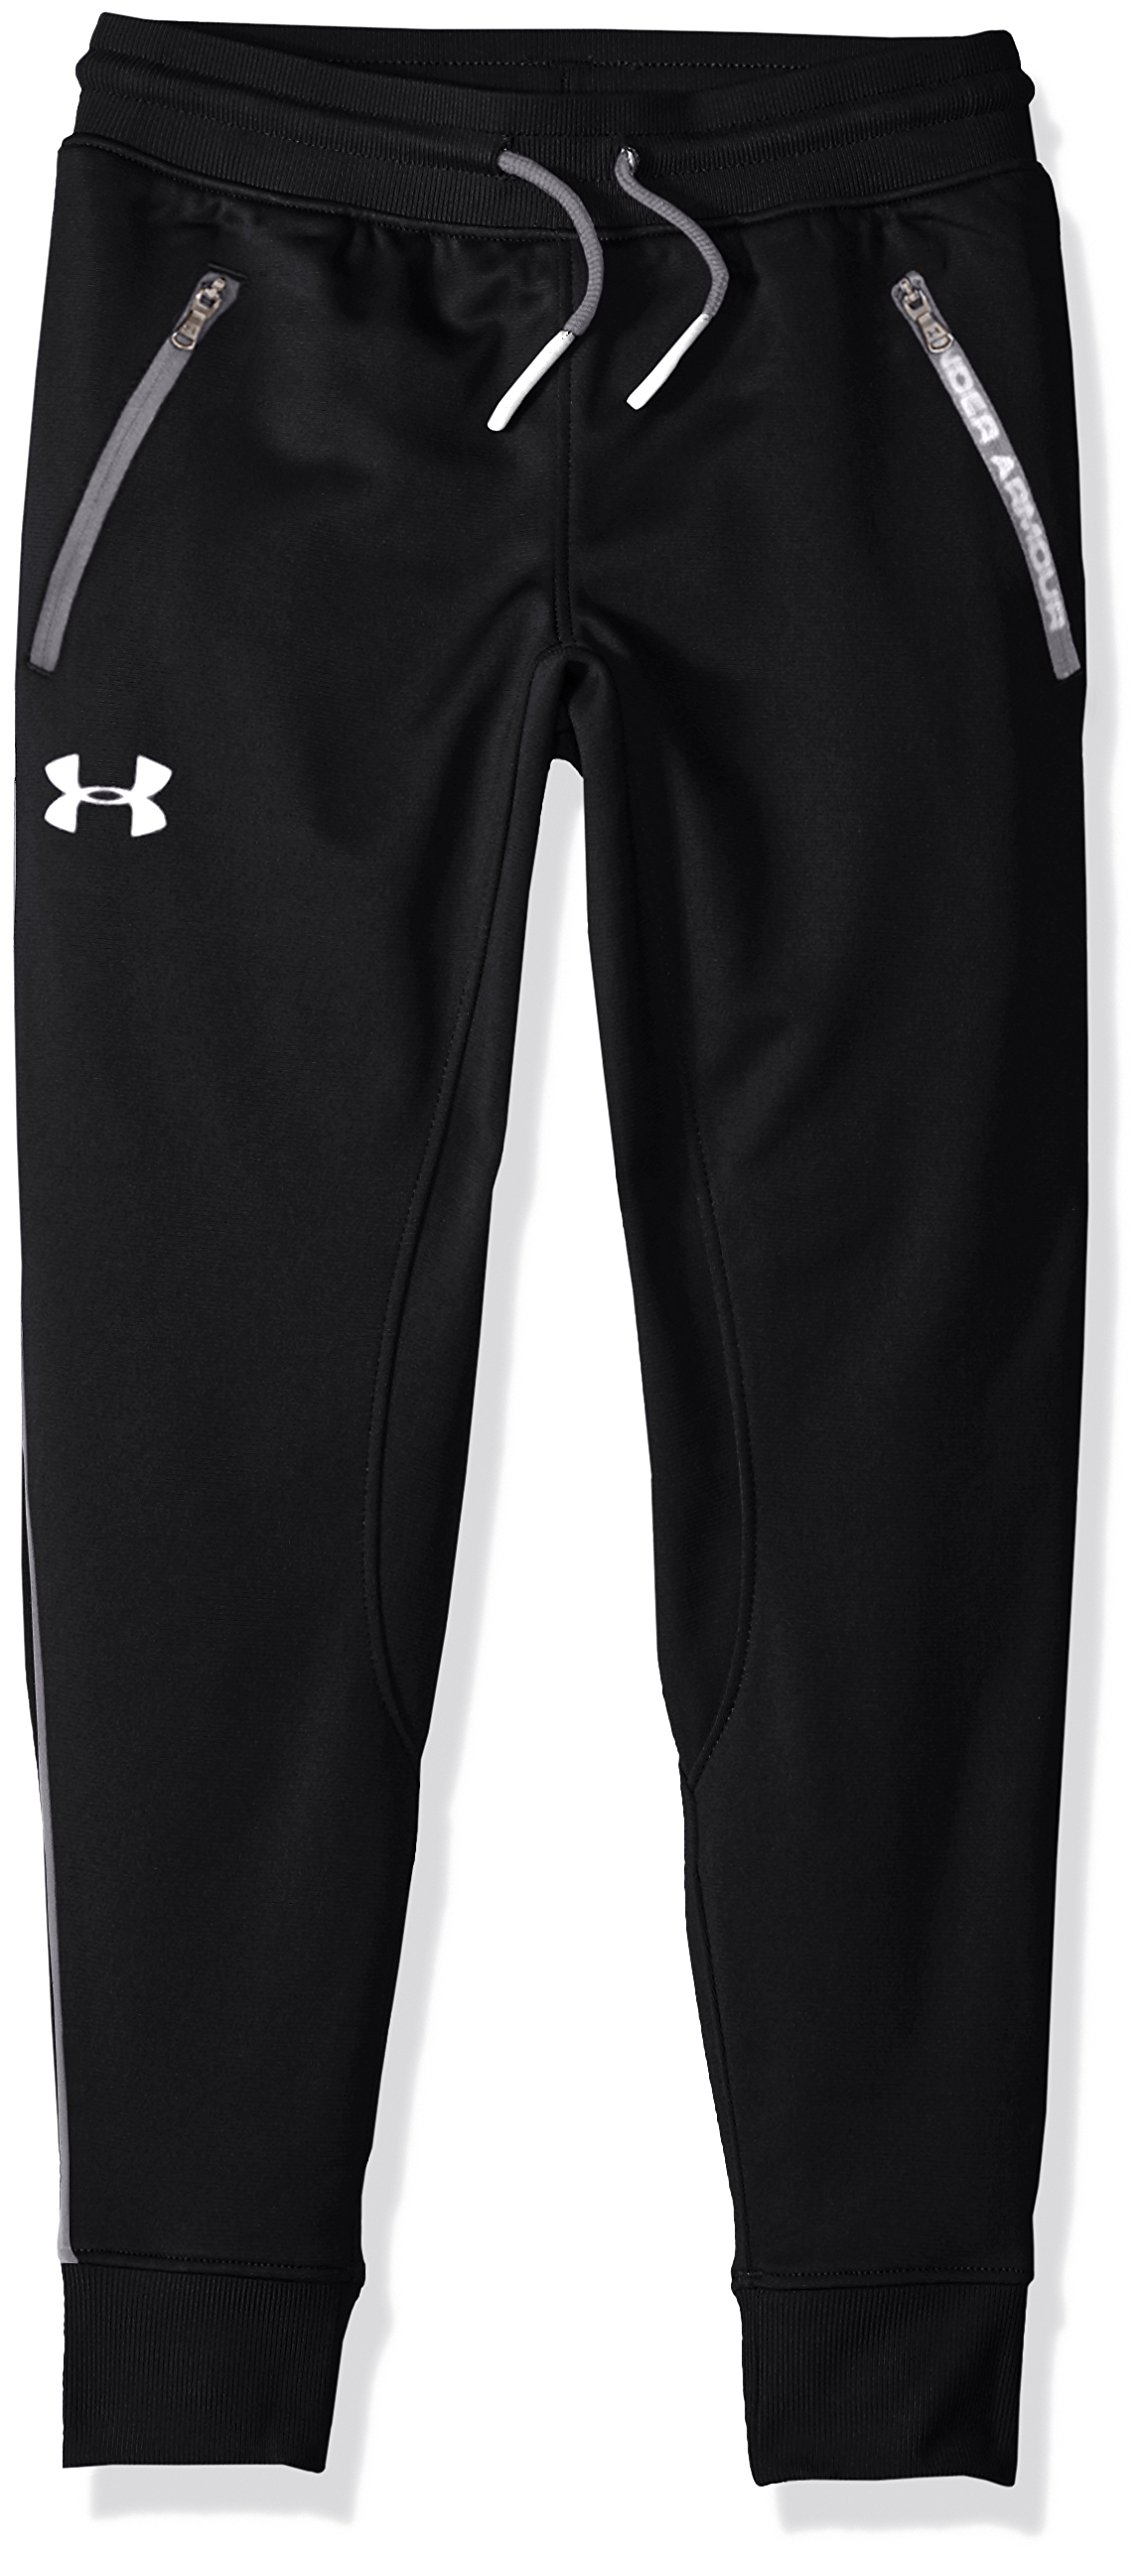 Under Armour Boys' Pennant Tapered Pant, Black/White, Youth Small